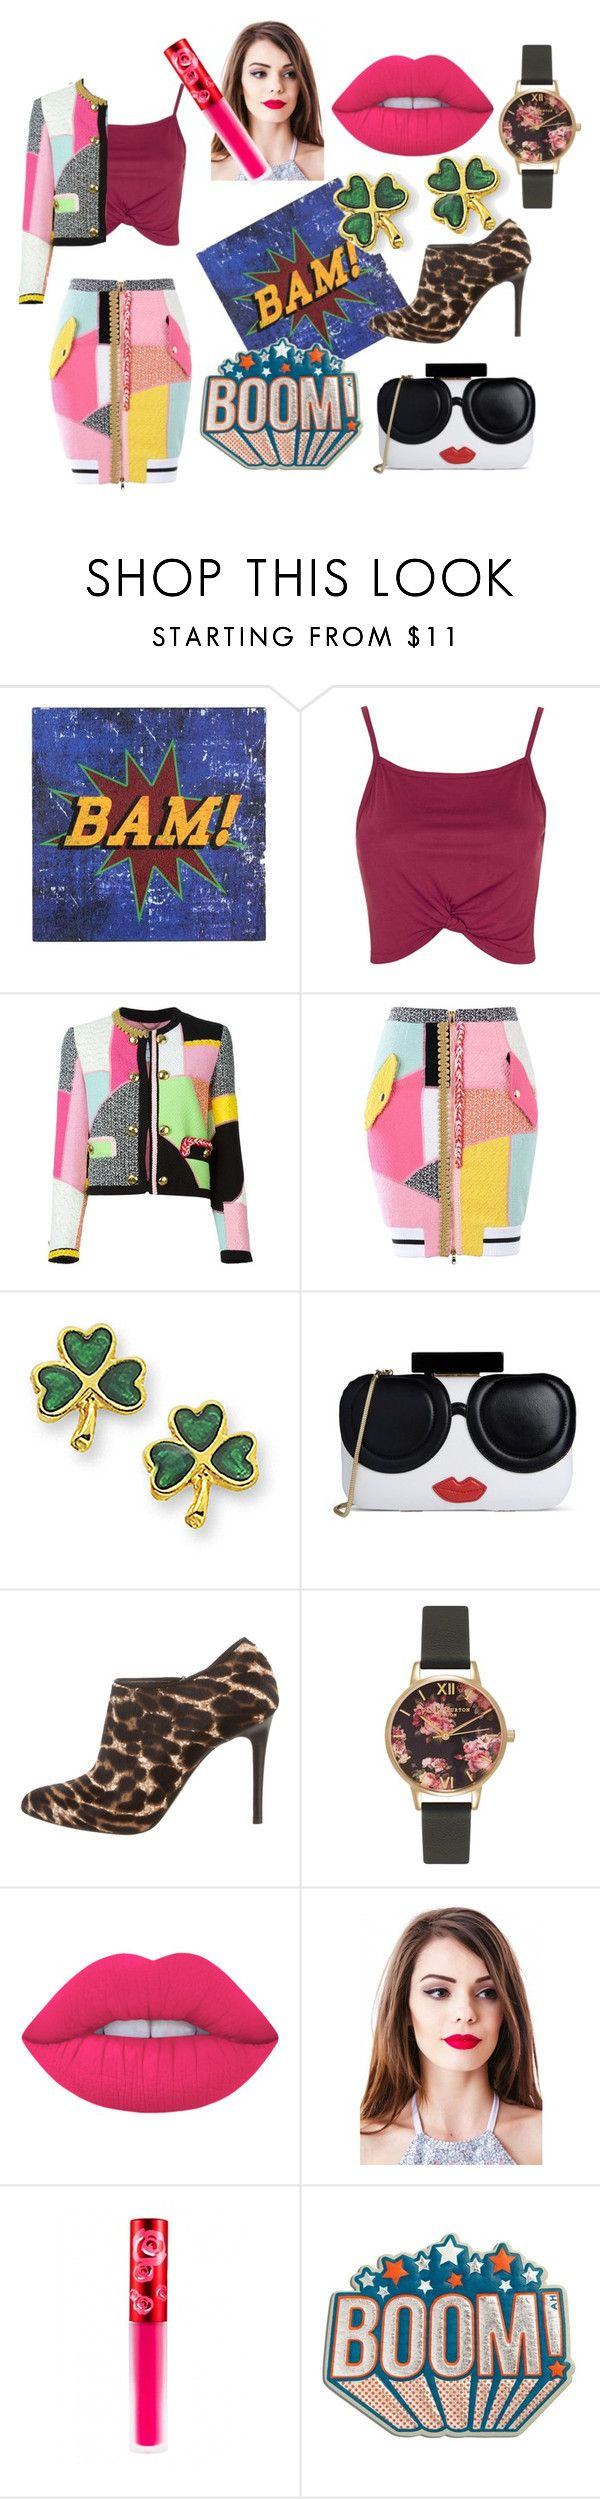 """""""Bam Boom Splitz"""" by marthabr ❤ liked on Polyvore featuring Topshop, Moschino, Alice + Olivia, Lanvin, Olivia Burton, Lime Crime and Anya Hindmarch"""